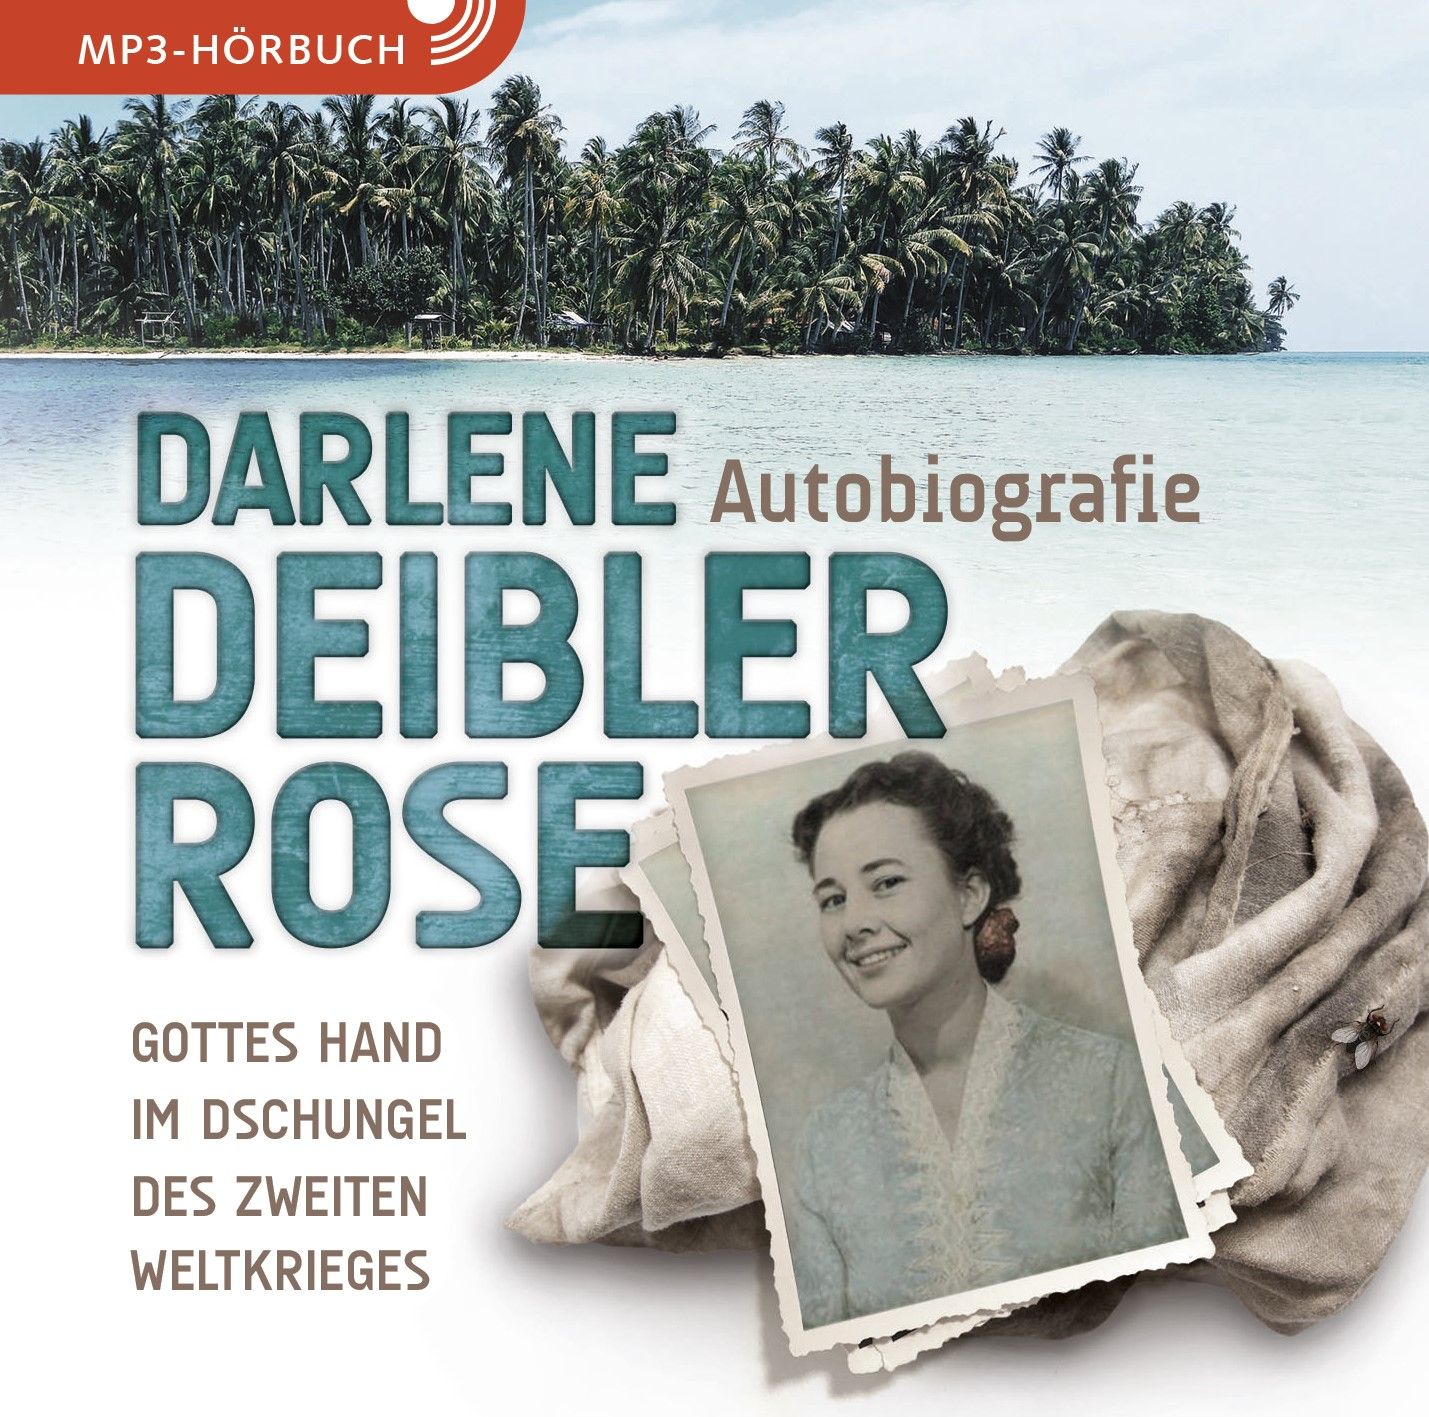 DOWNLOAD: Darlene Deibler Rose (Hörbuch [MP3])